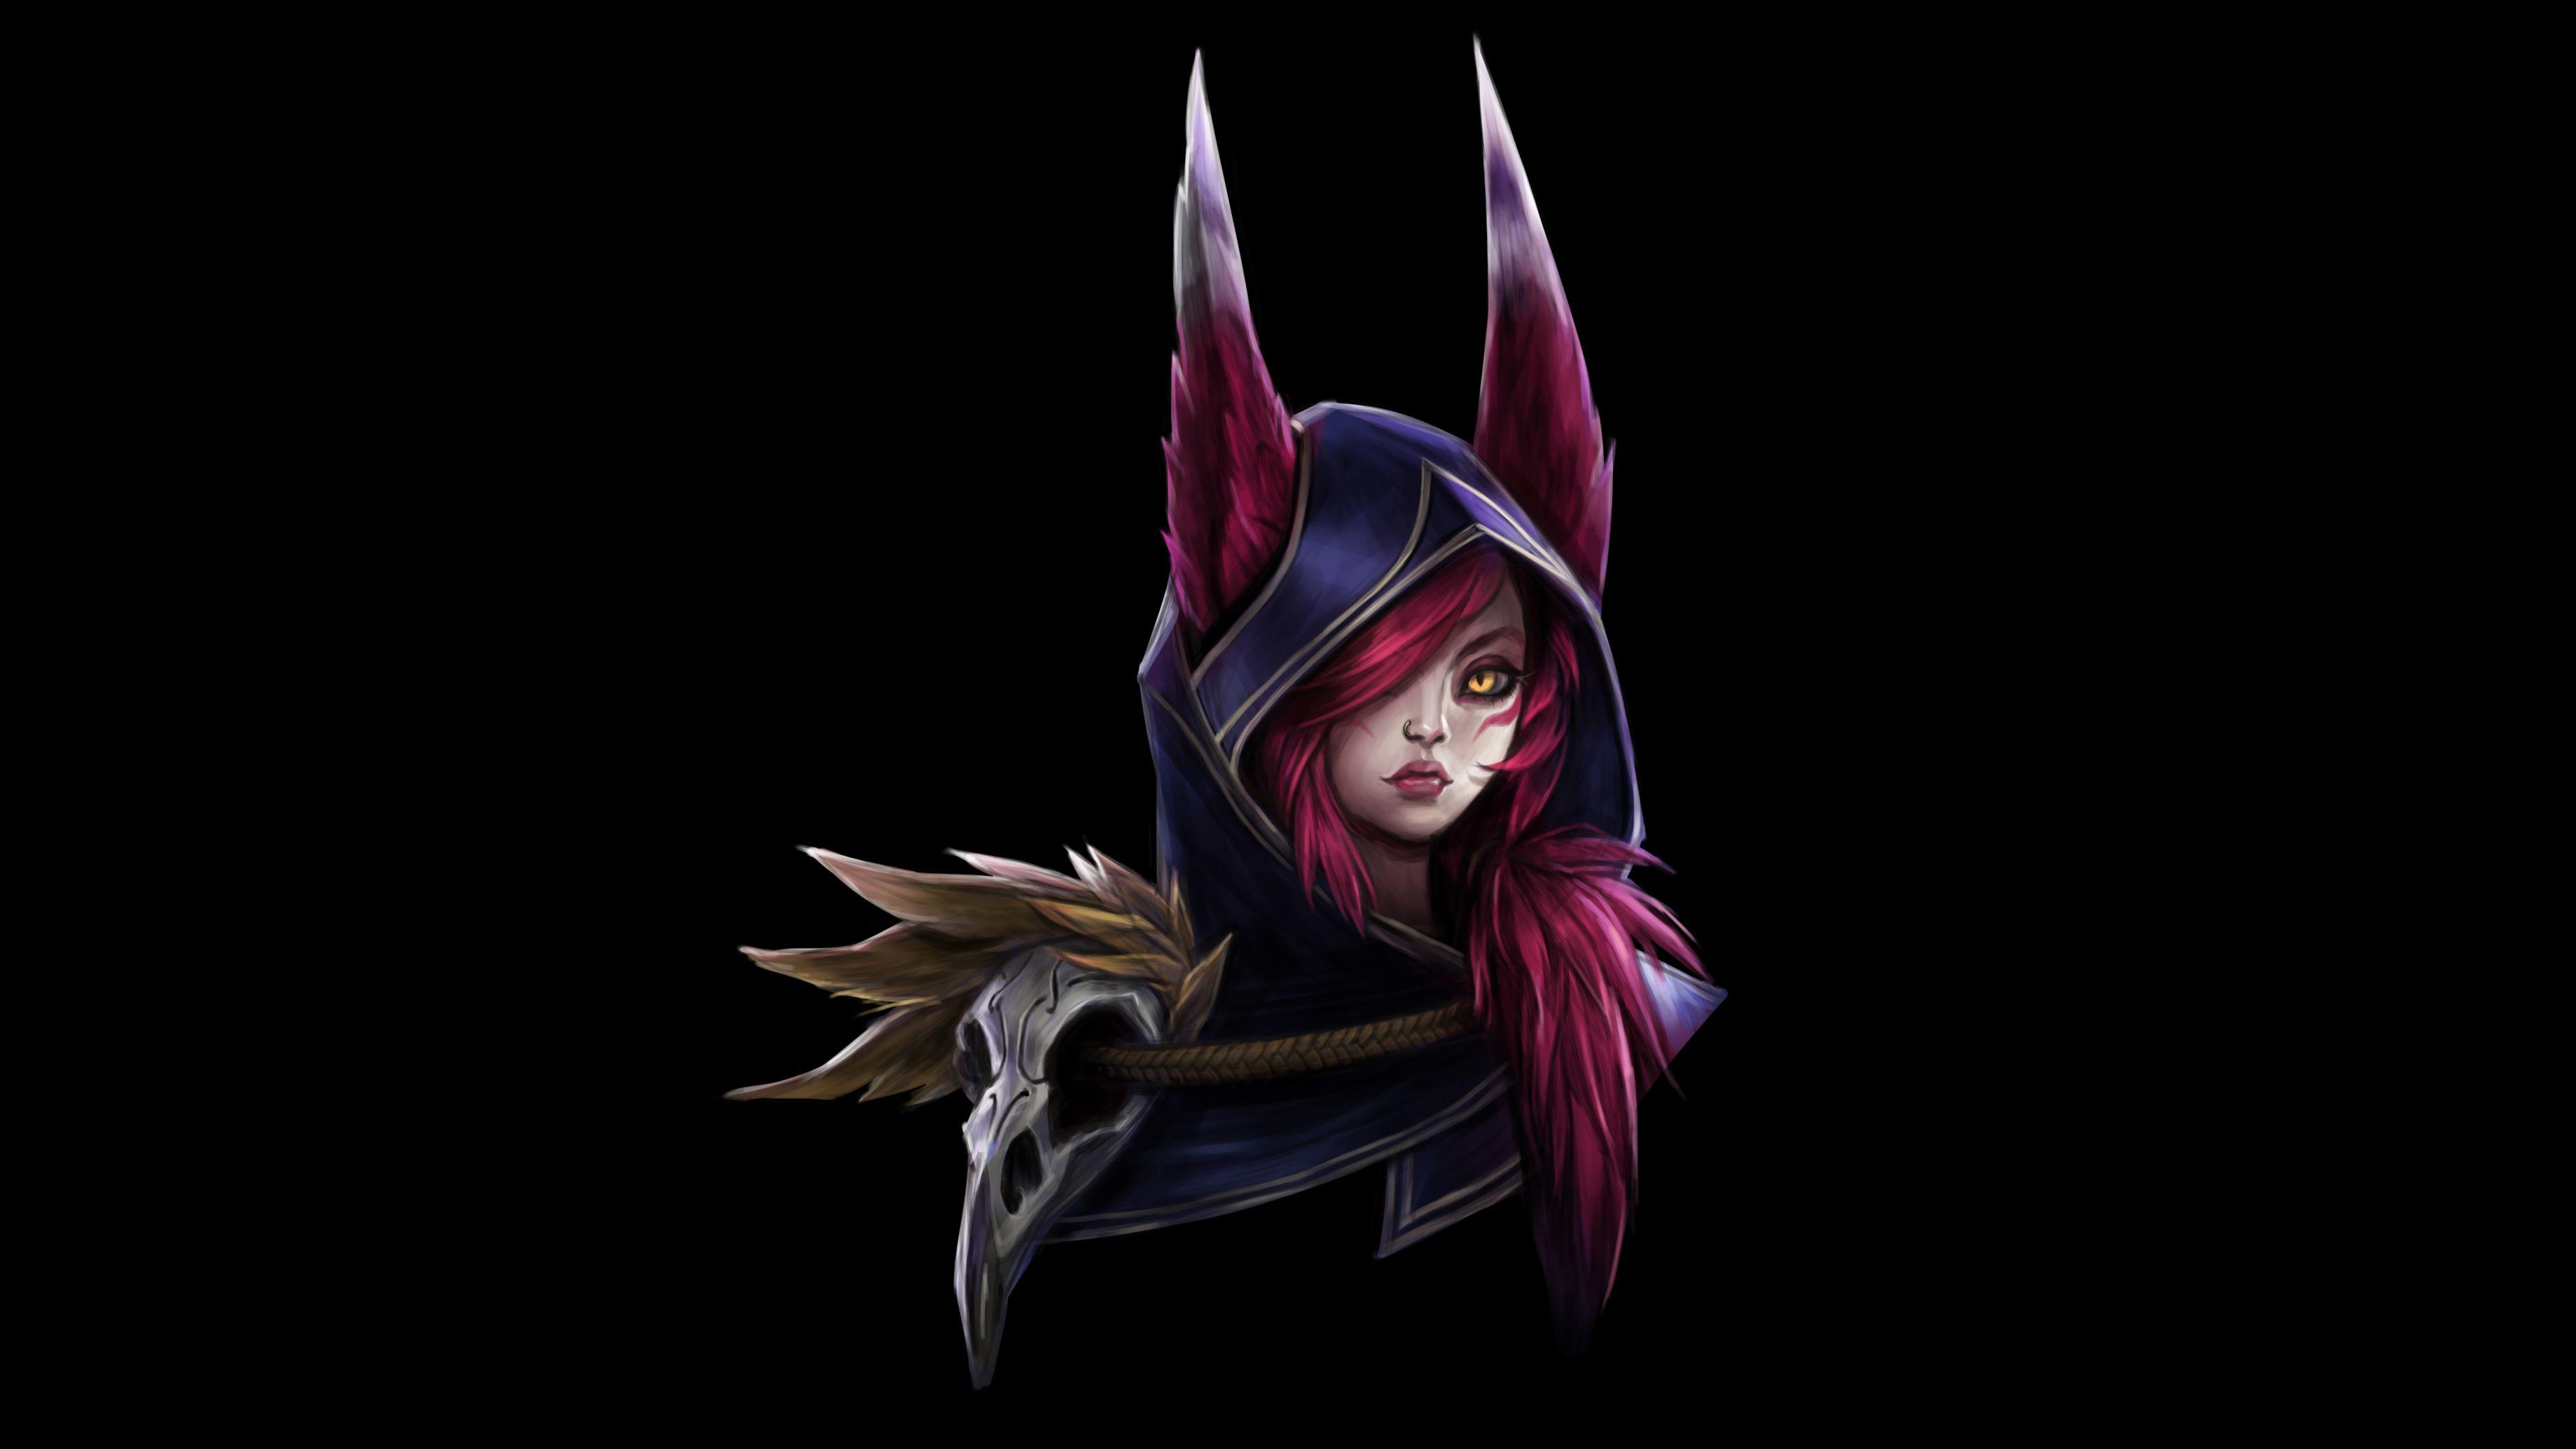 Xayah Portrait | LoL Wallpapers